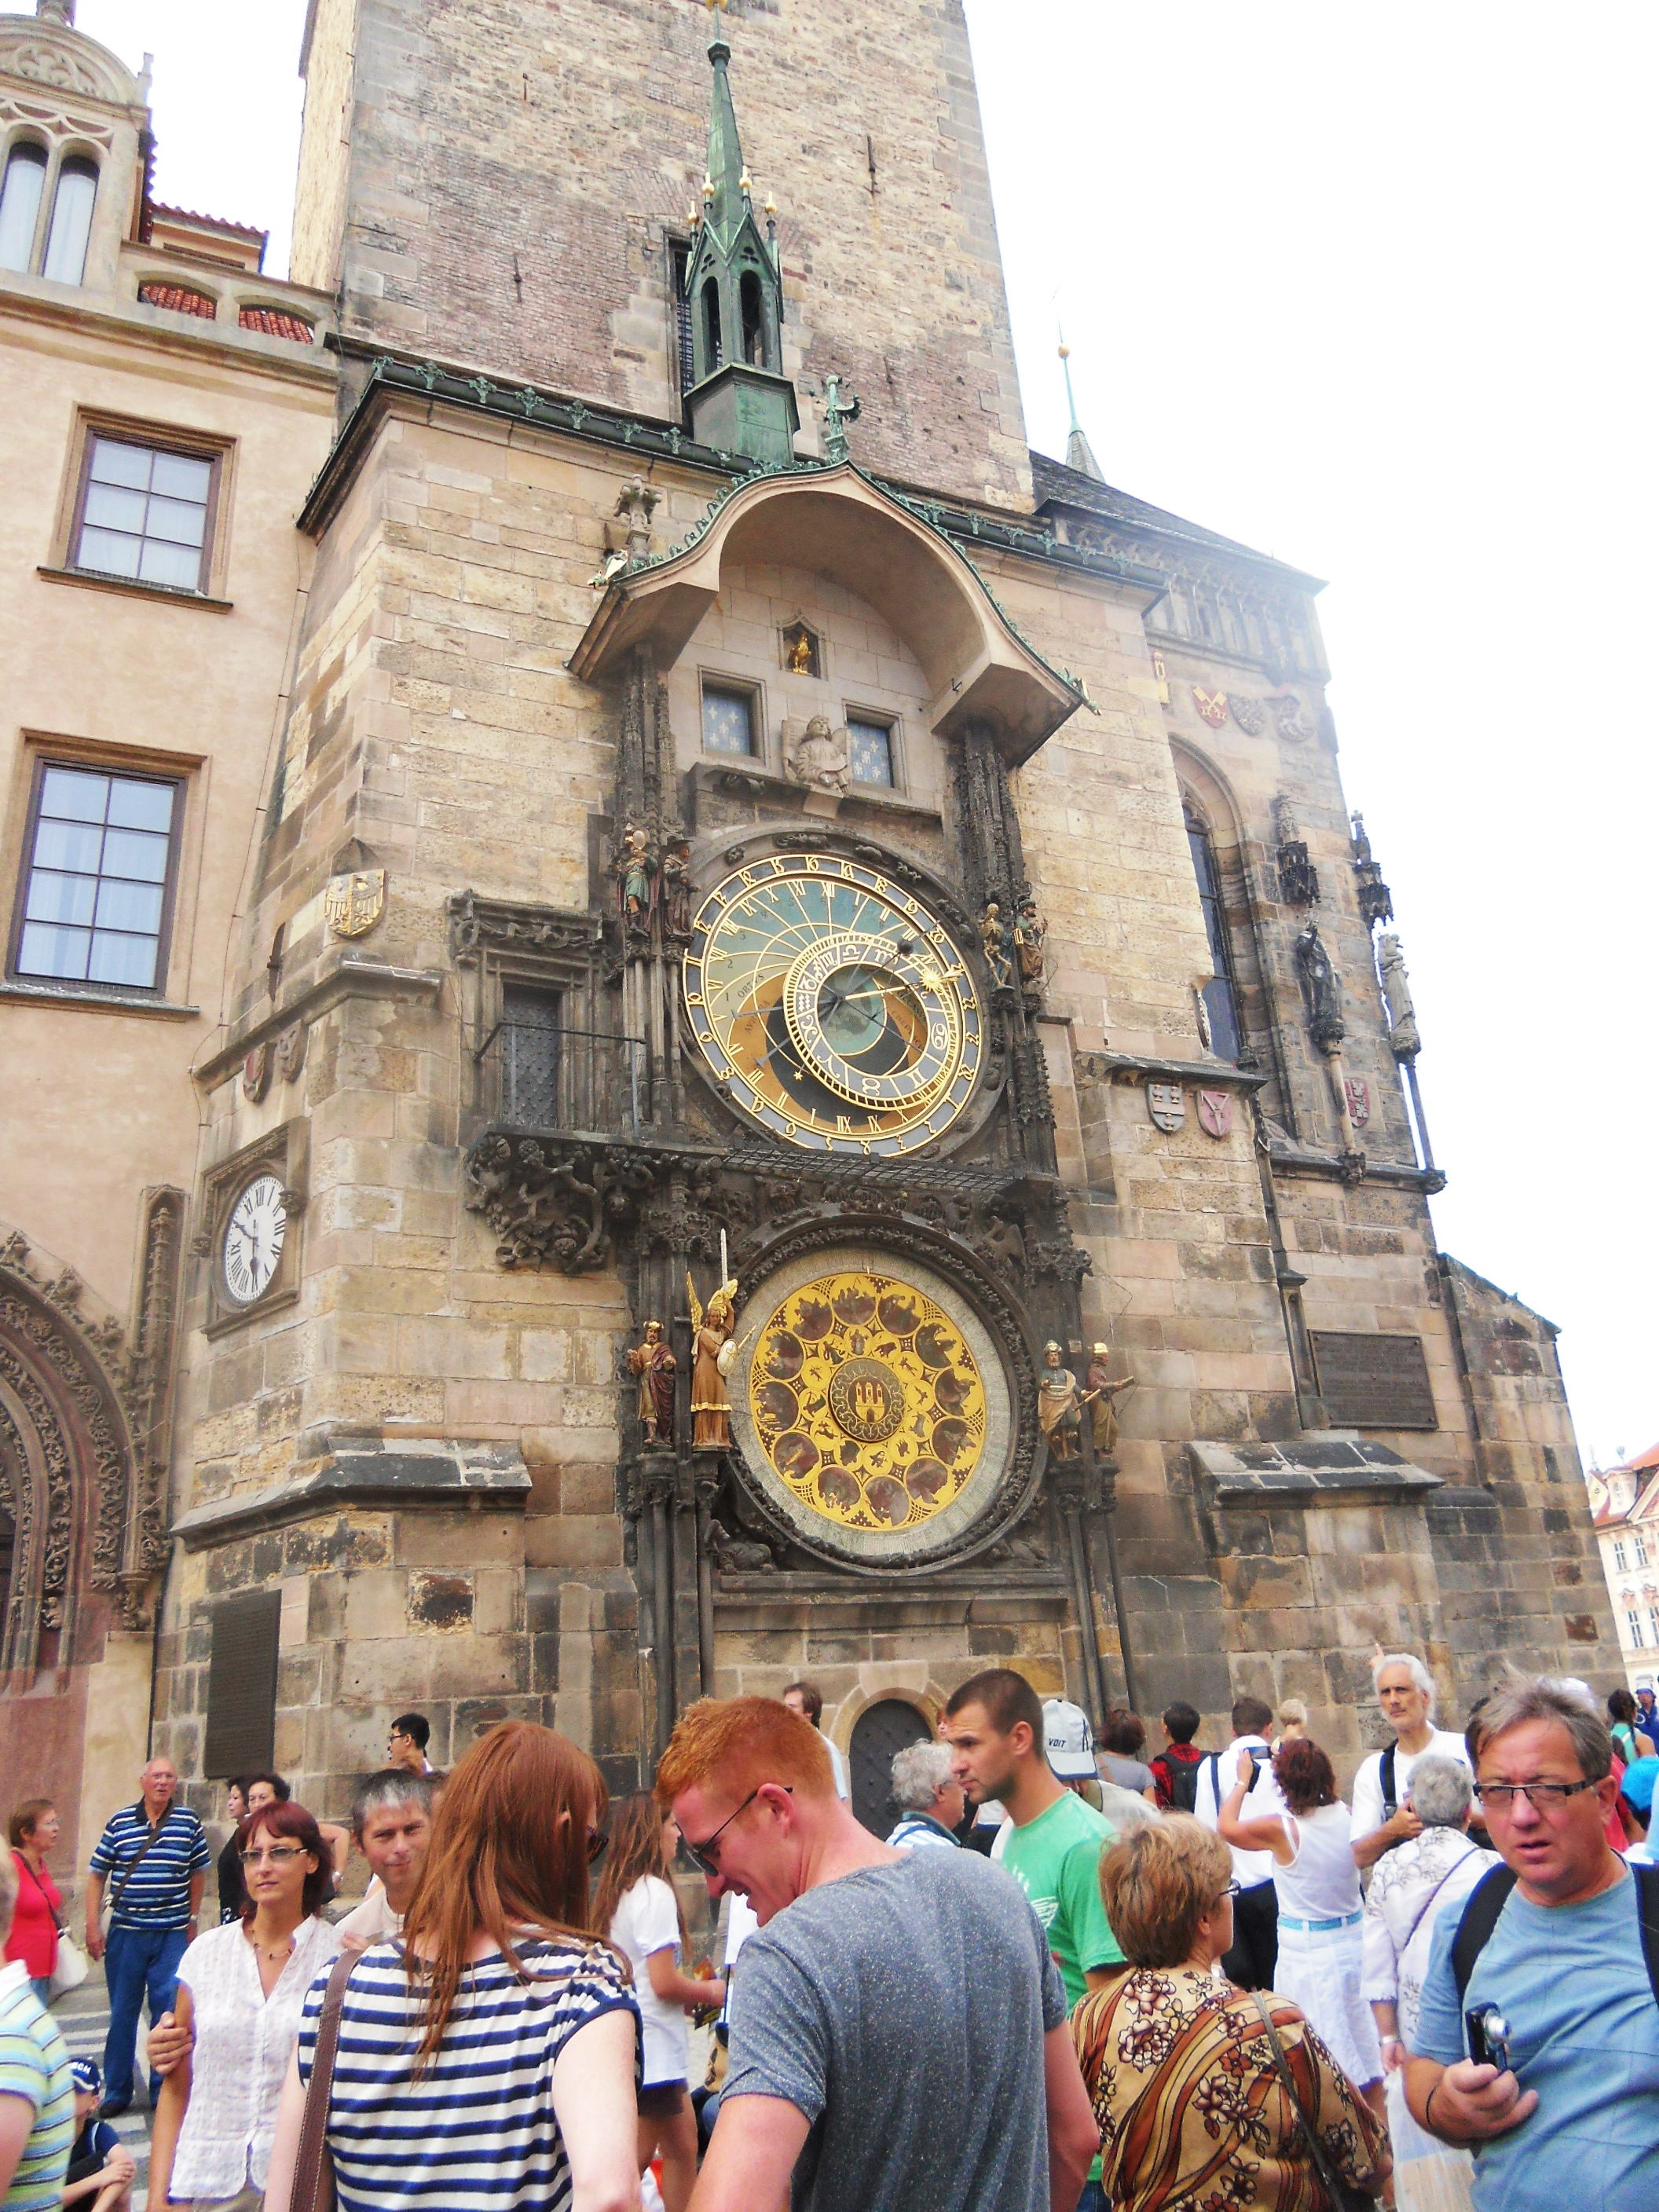 Astronomical Clock a.k.a Jam Bego